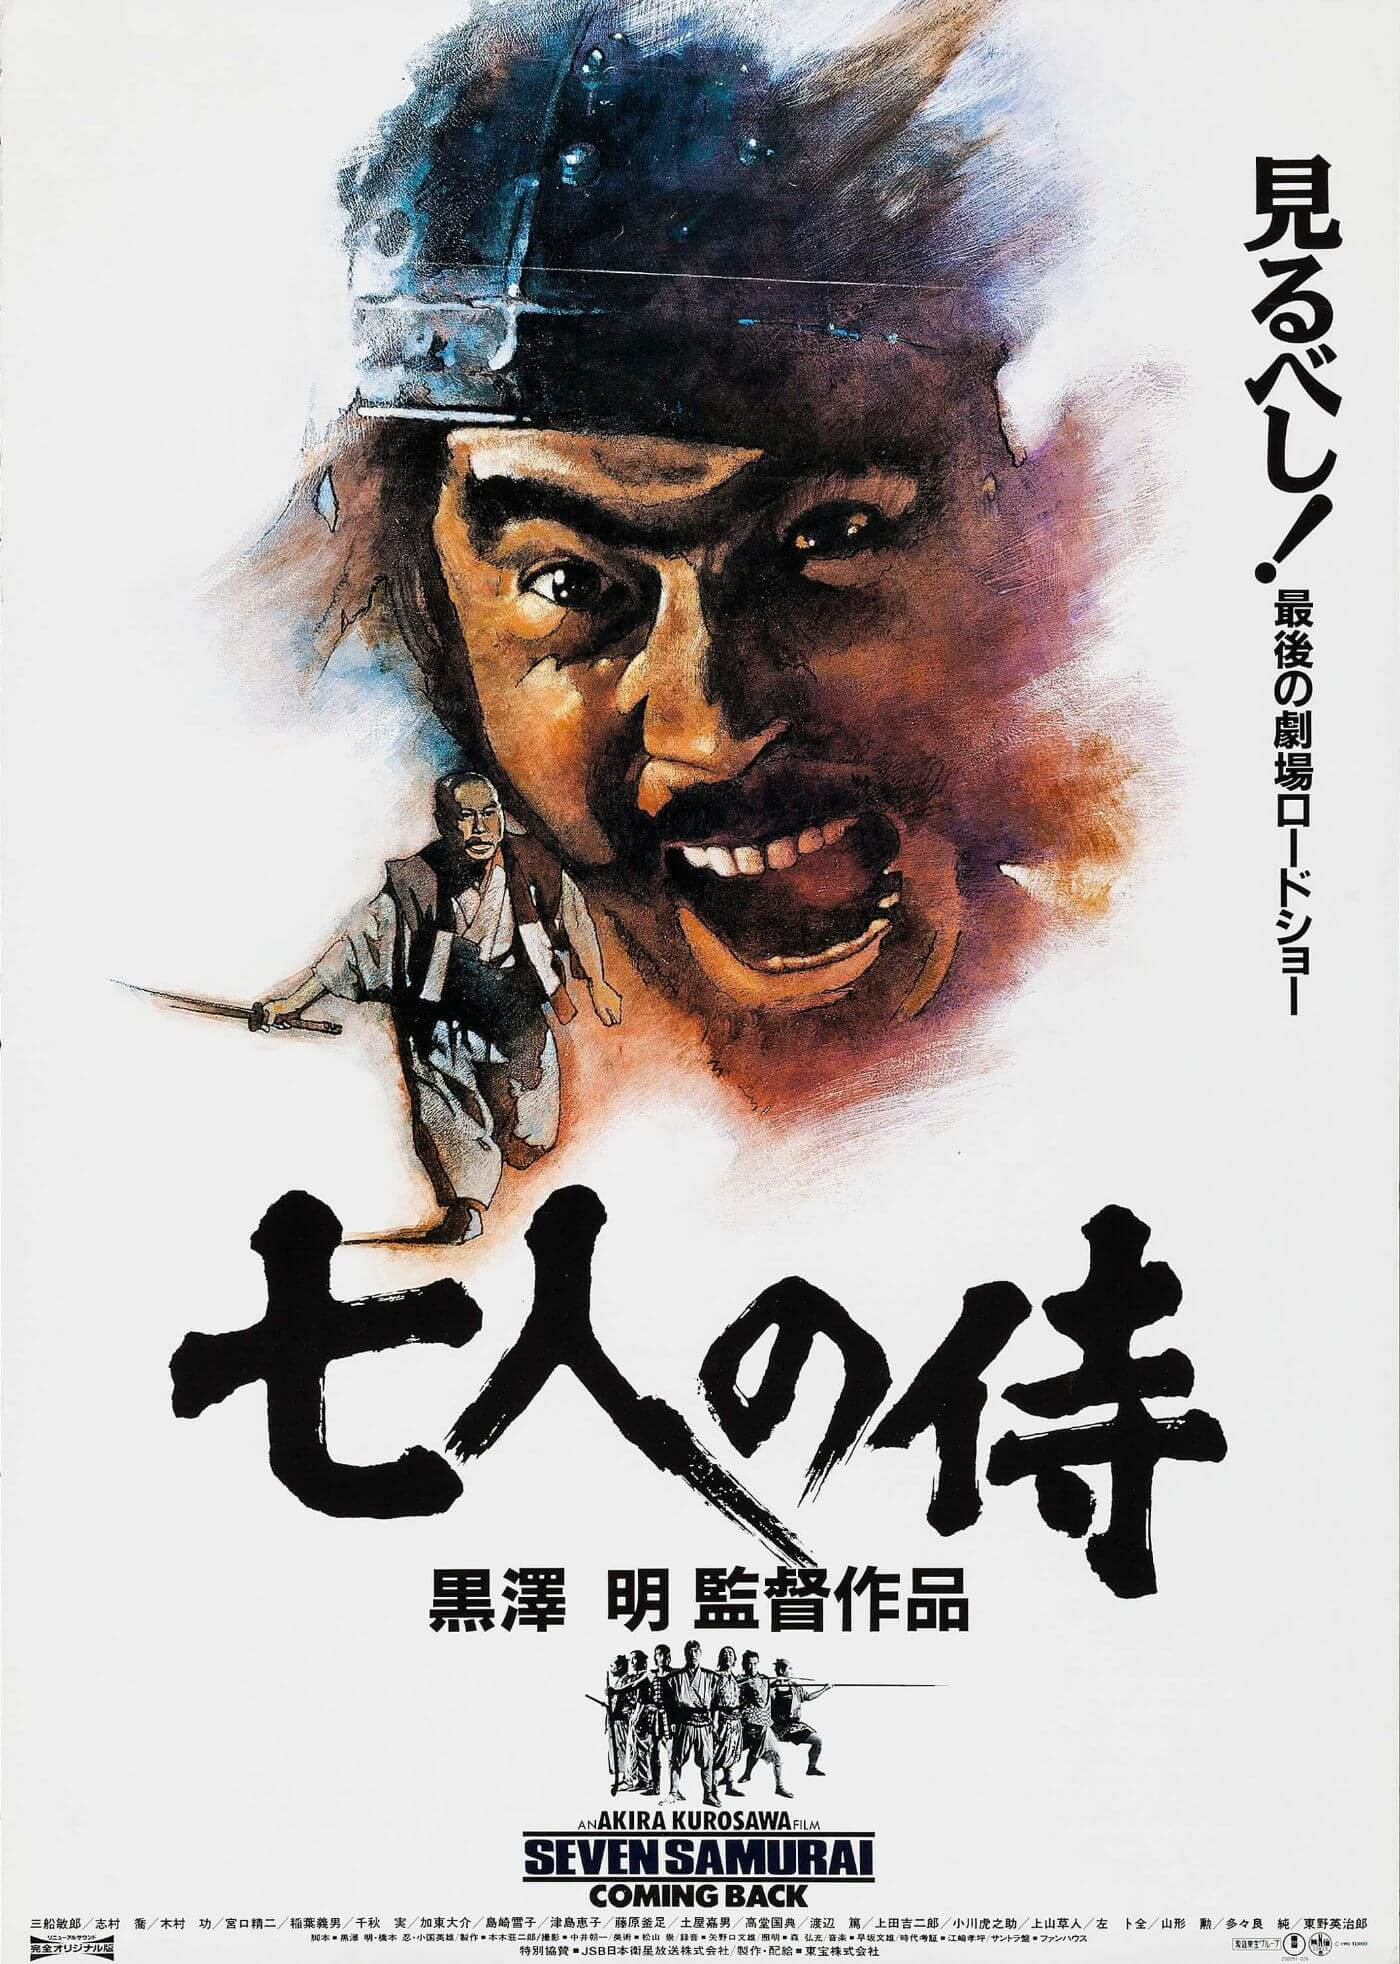 Seven Samurai - Akira Kurosawa Japanese Cinema Masterpiece - Re Release Movie Poster